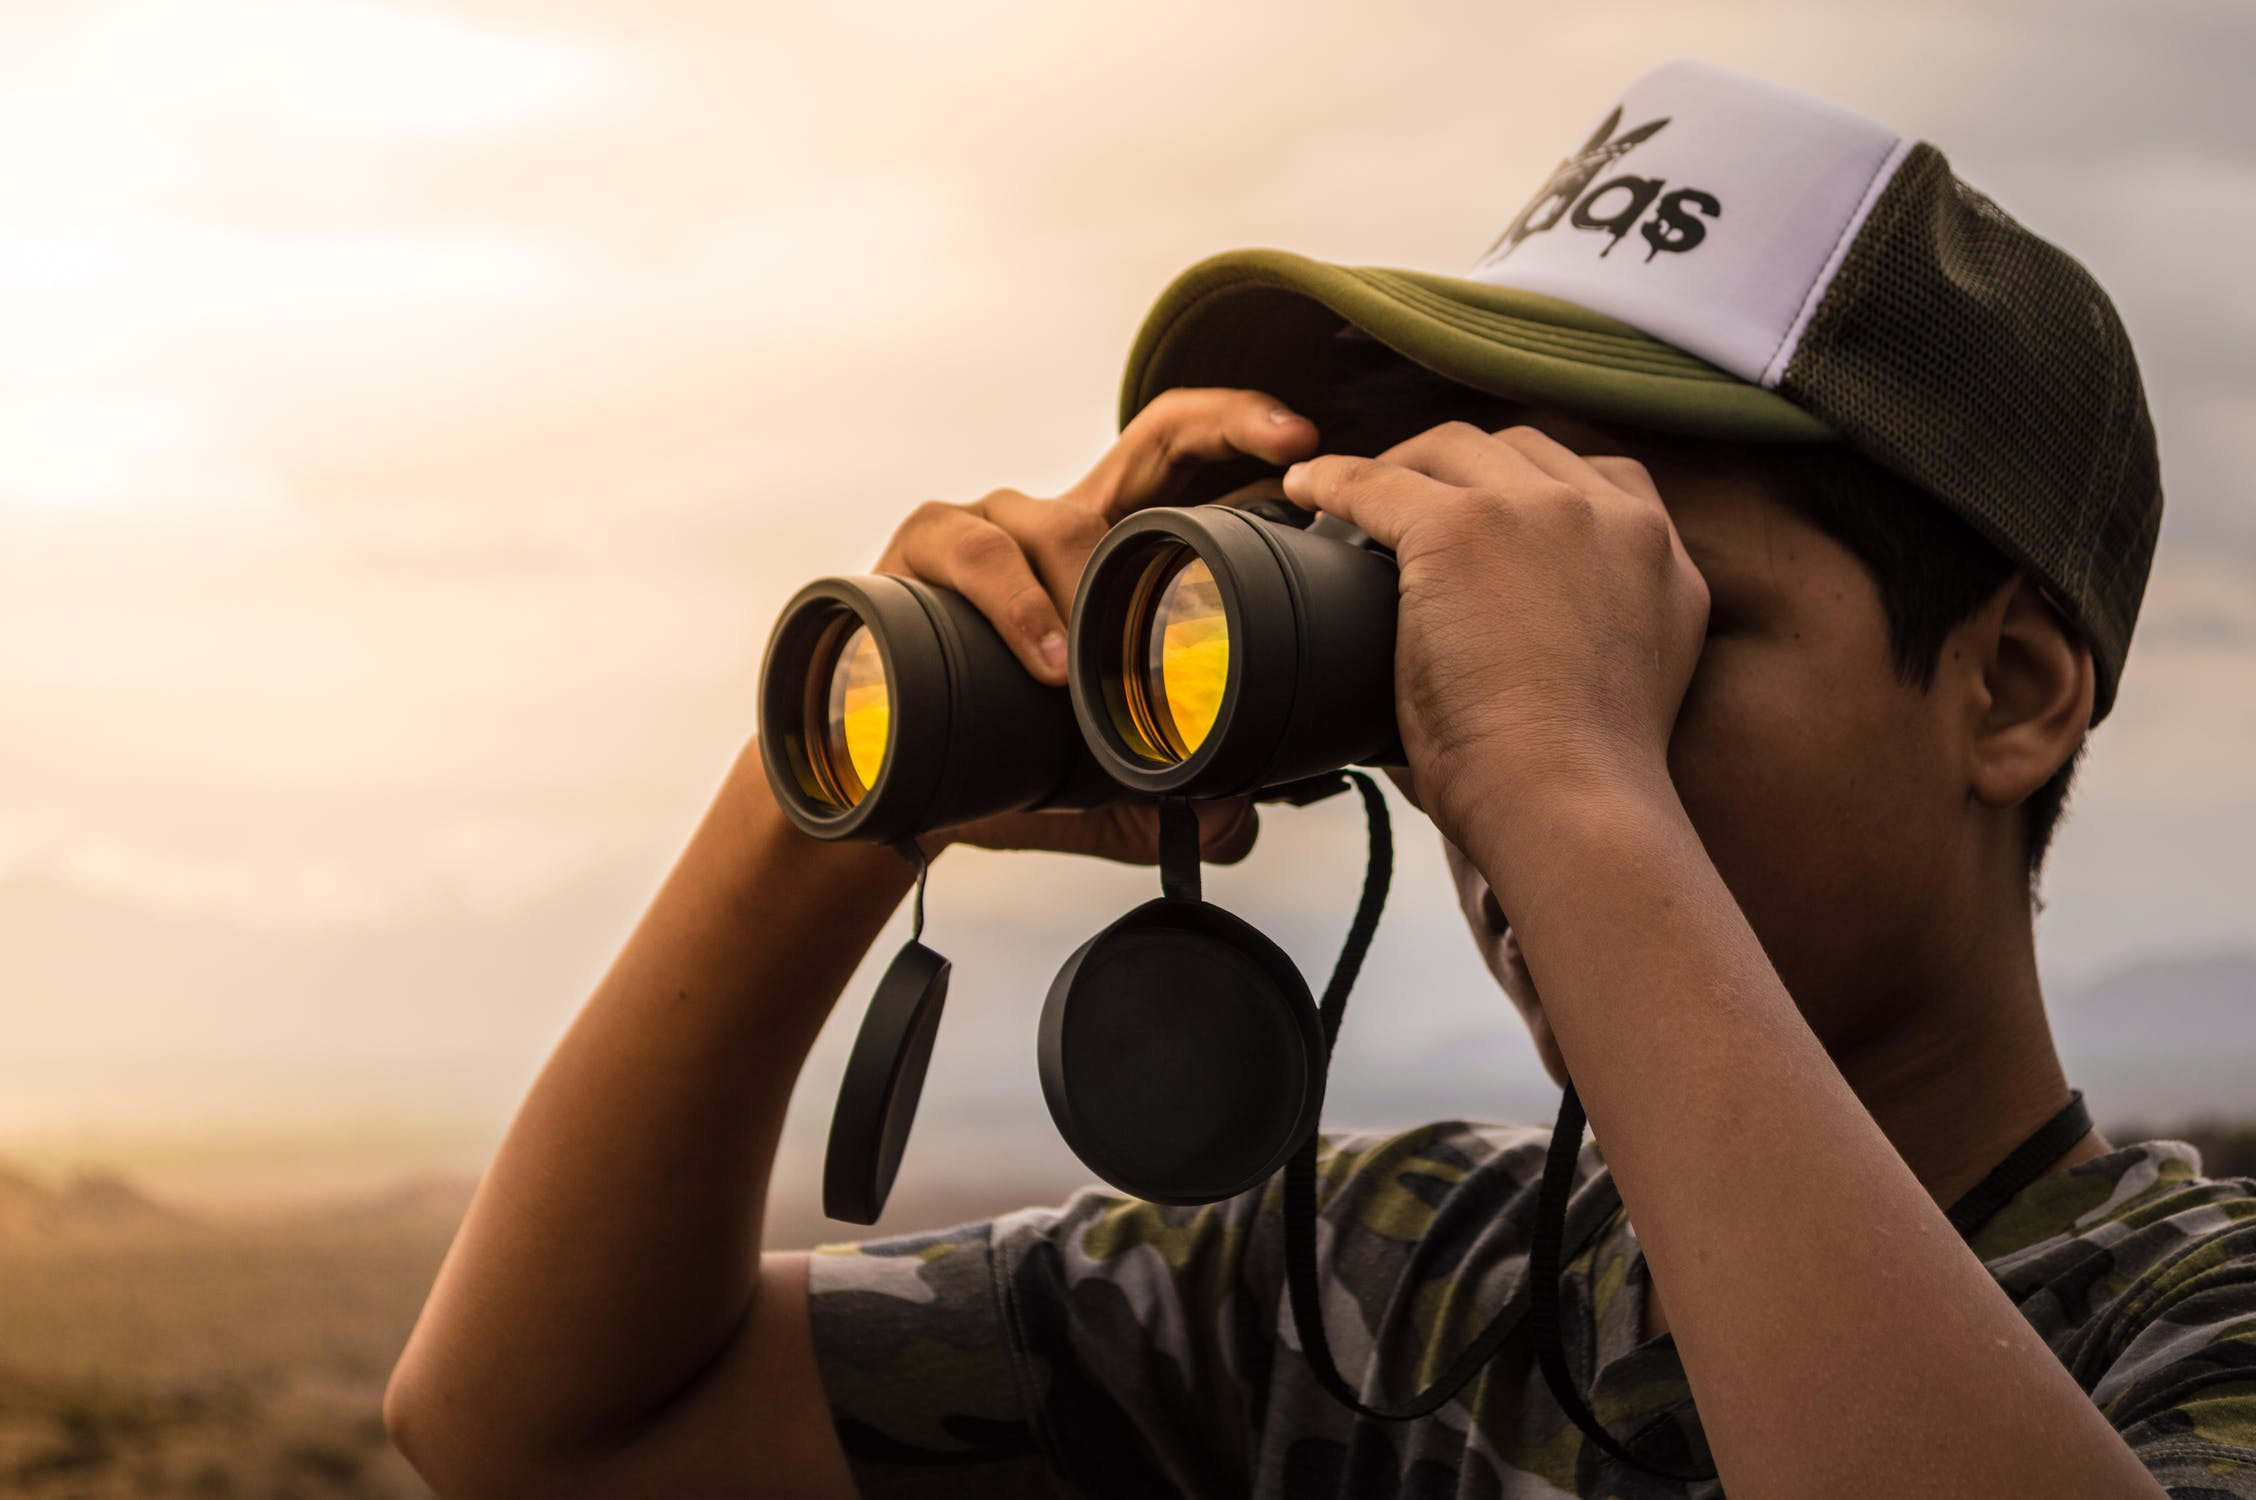 man using his binoculars to look in the distance